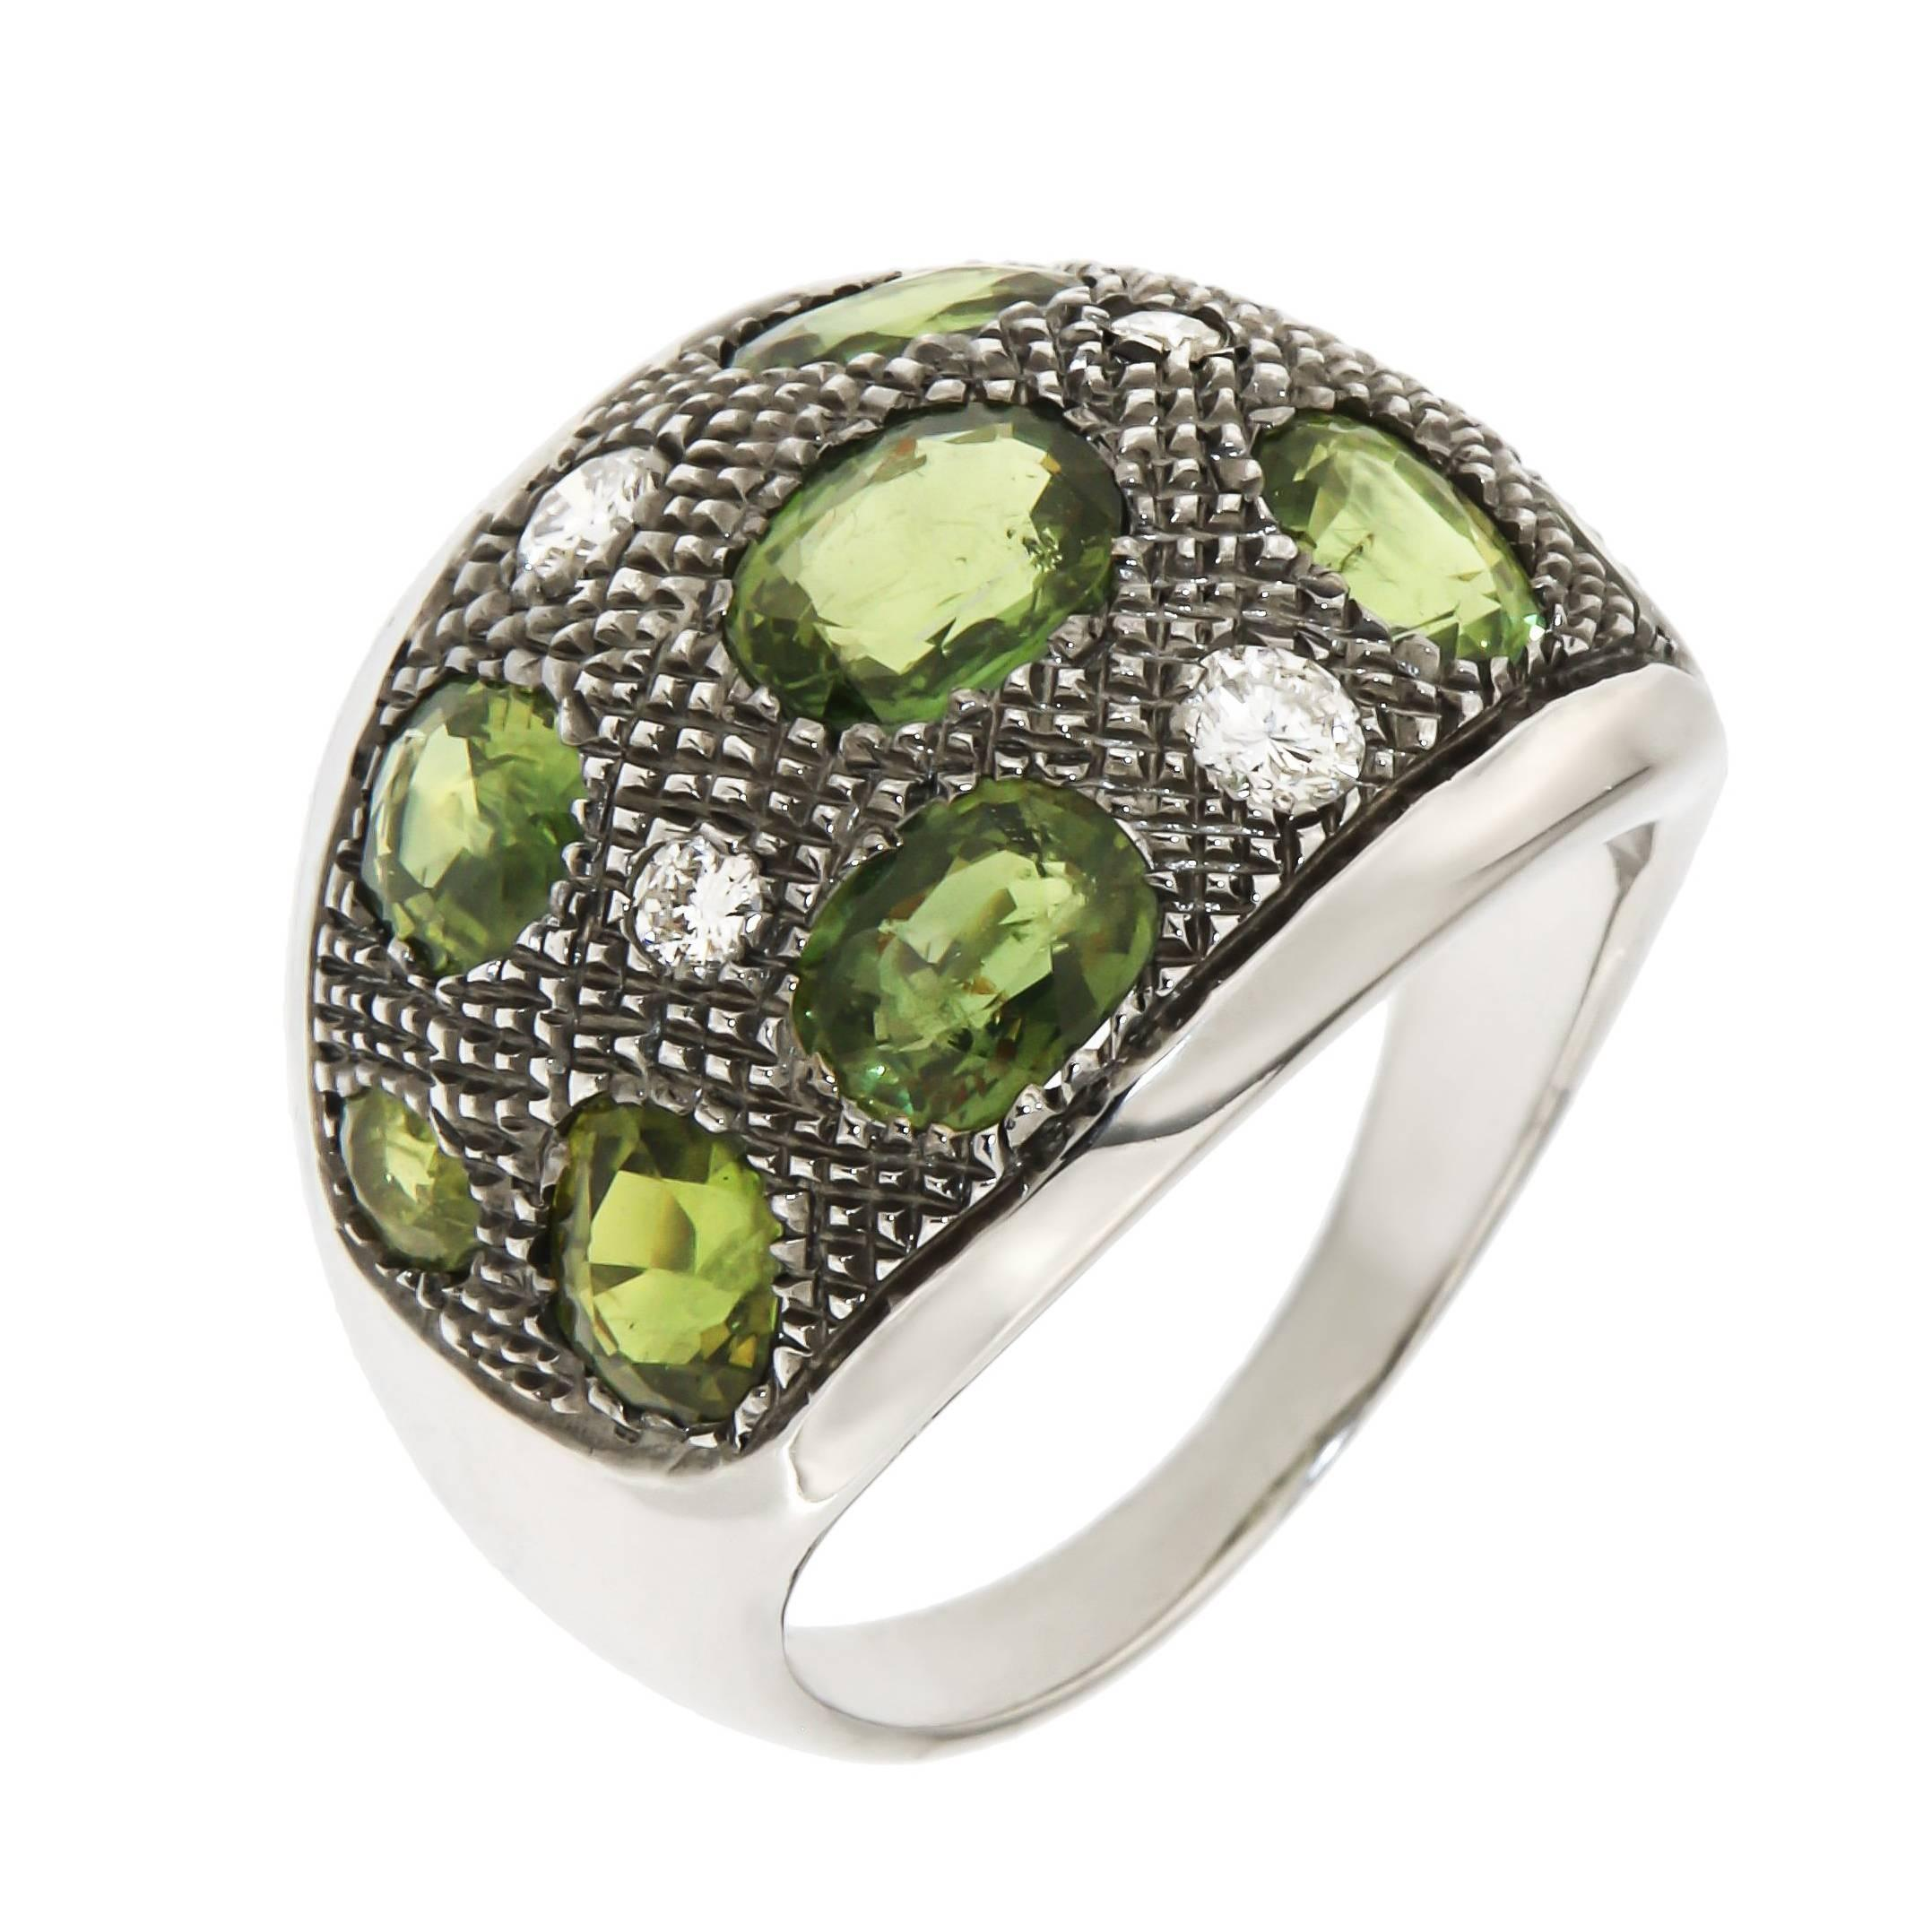 Diamonds Green Sapphires 18 Karat White Gold Cocktail Ring Handcrafted in Italy